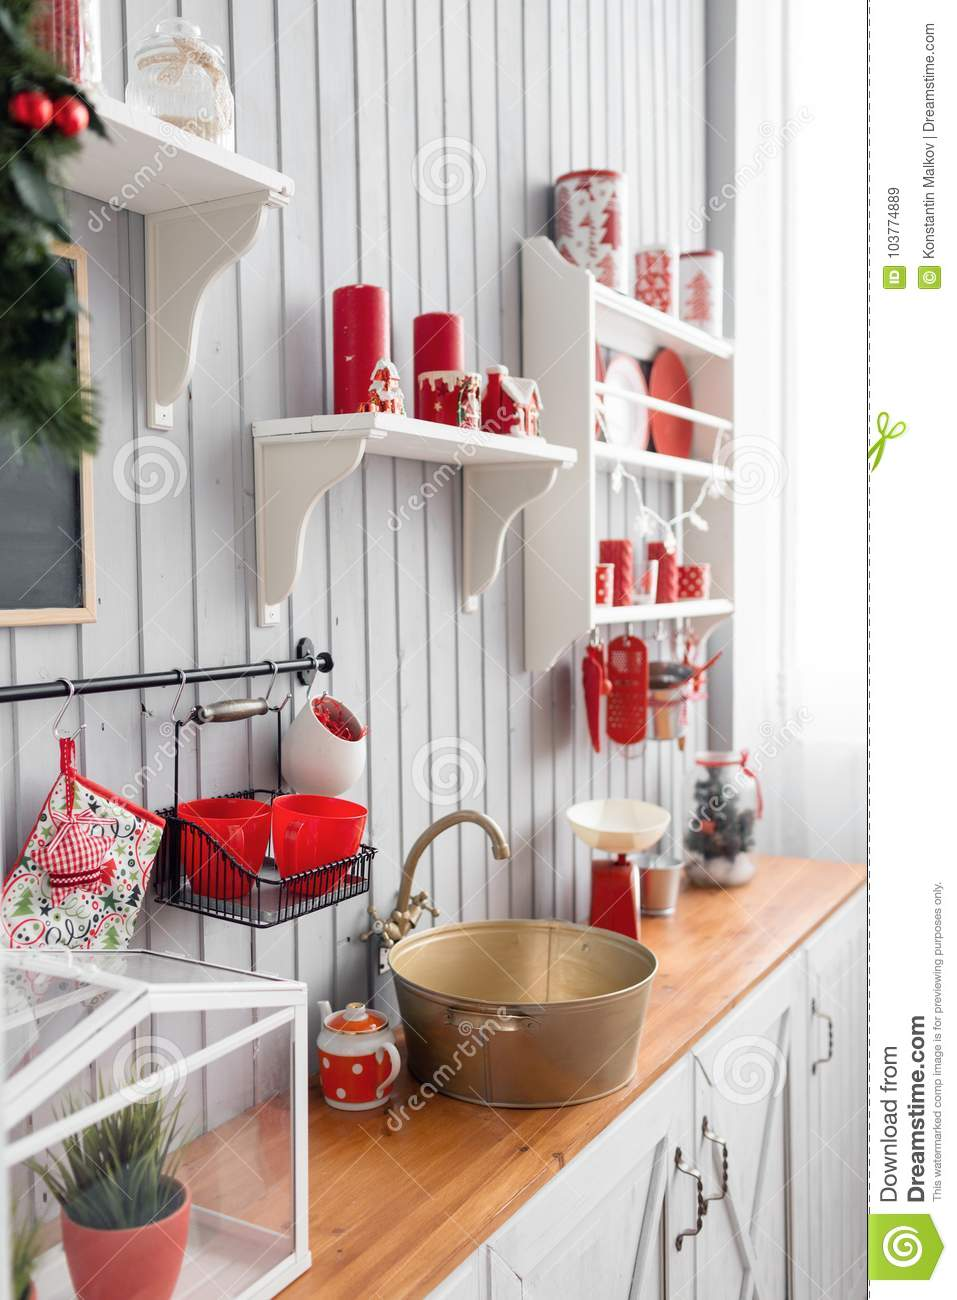 Shelves With Dishes Interior Light Grey Kitchen And Red Christmas Decor Preparing Lunch At Home On The Kitchen Concept Stock Image Image Of Retro Decoration 103774889